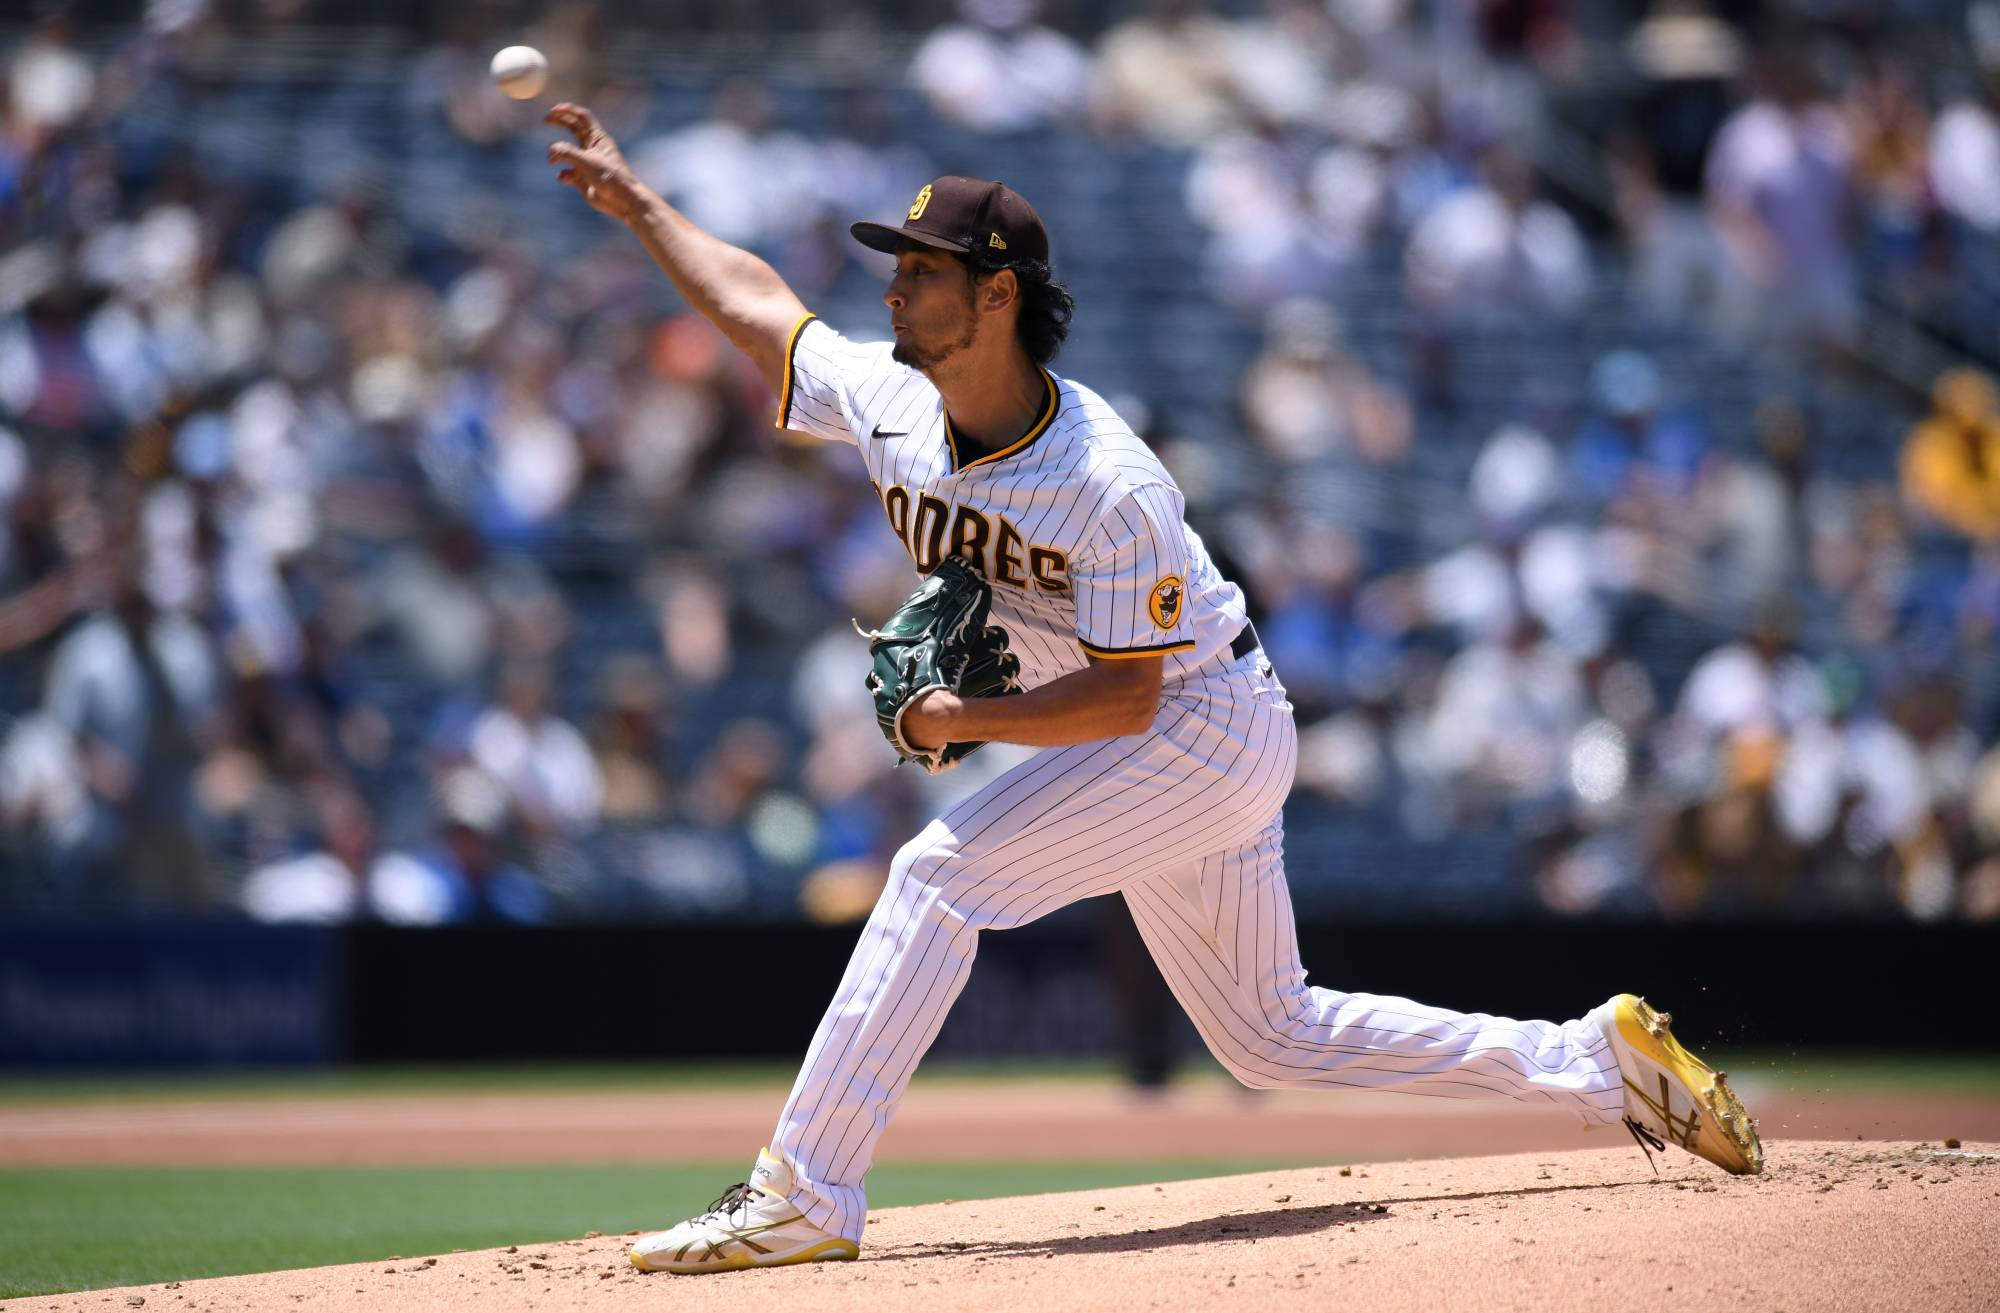 Padres starter Yu Darvish pitches against the Cubs in San Diego on Wednesday.   USA TODAY / VIA REUTERS